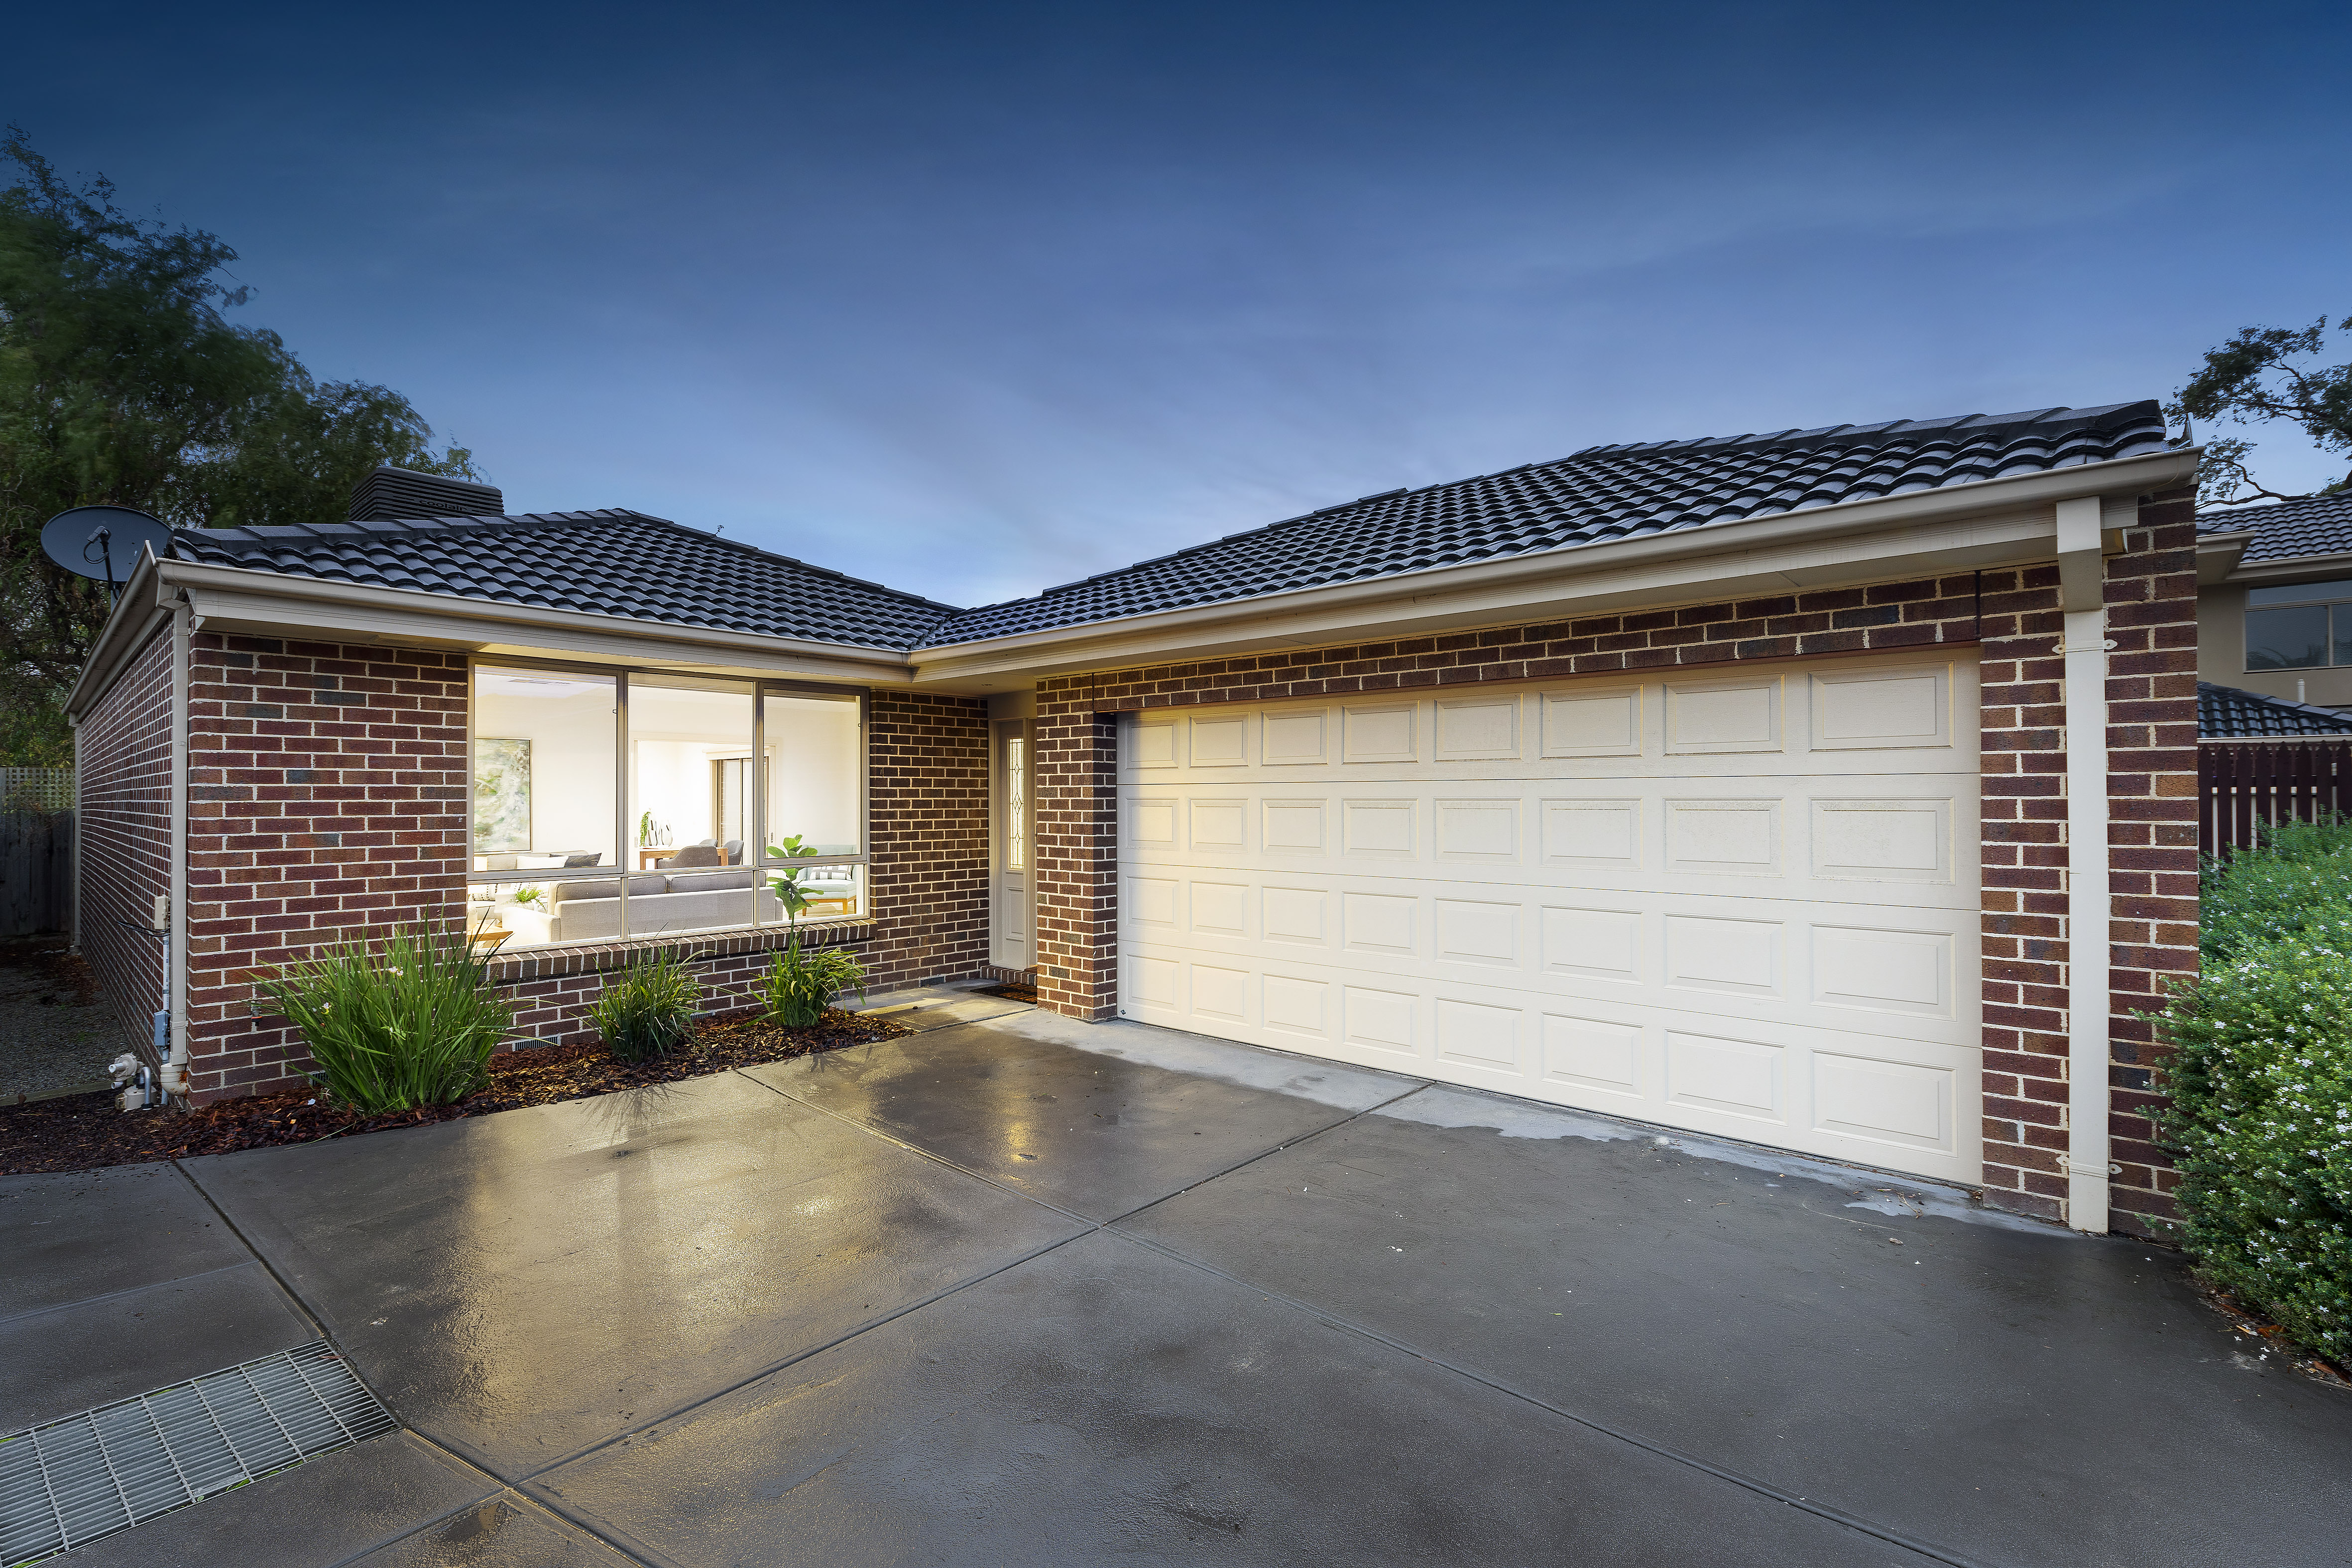 Live Auction at 4/9 Ash Grove, Bayswater | 29/06/19 | Melbourne